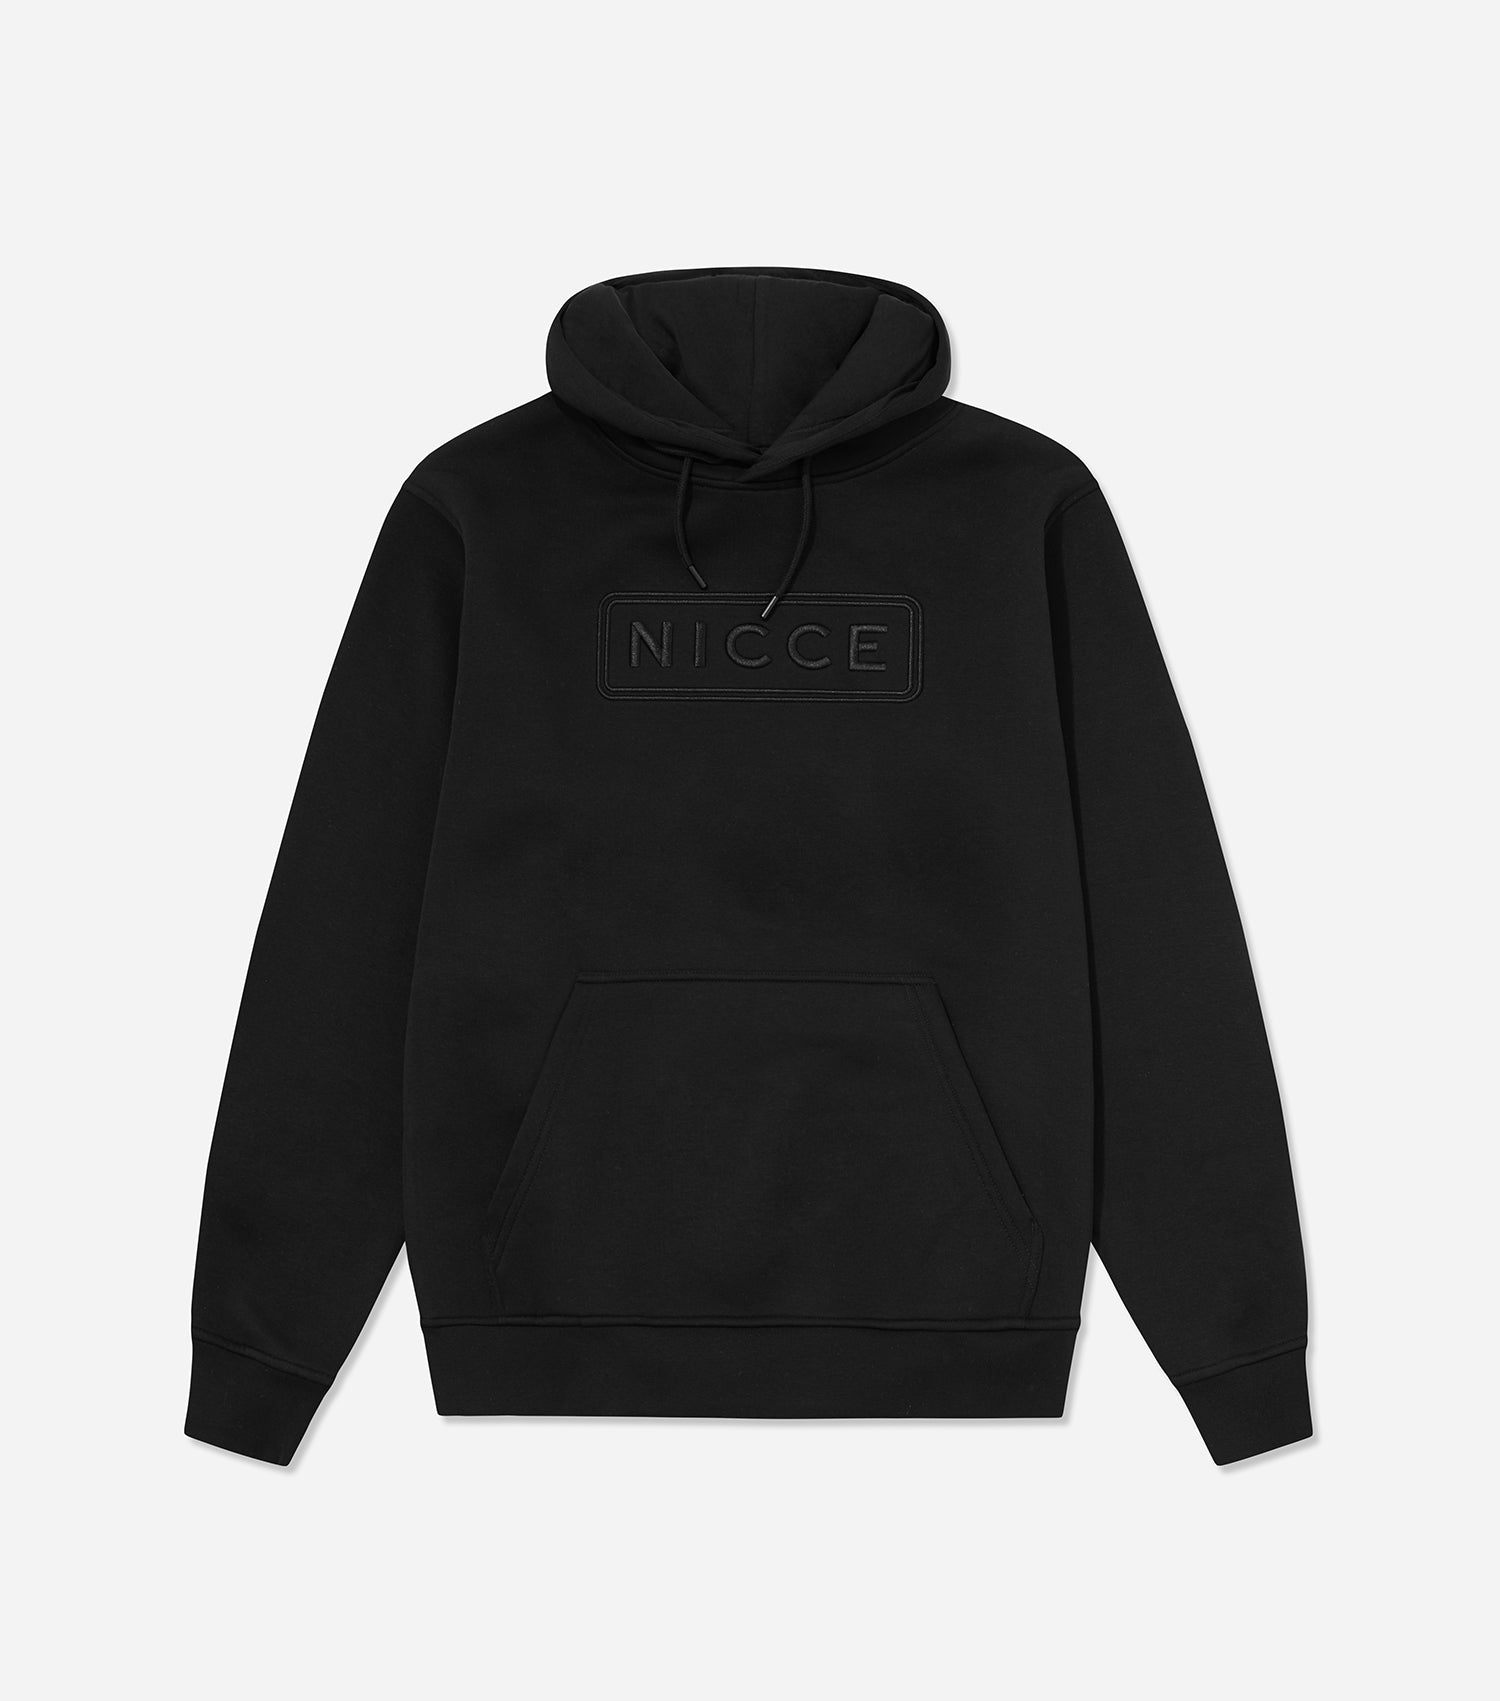 NICCE Mens Talin Hood | Black, Hoodies